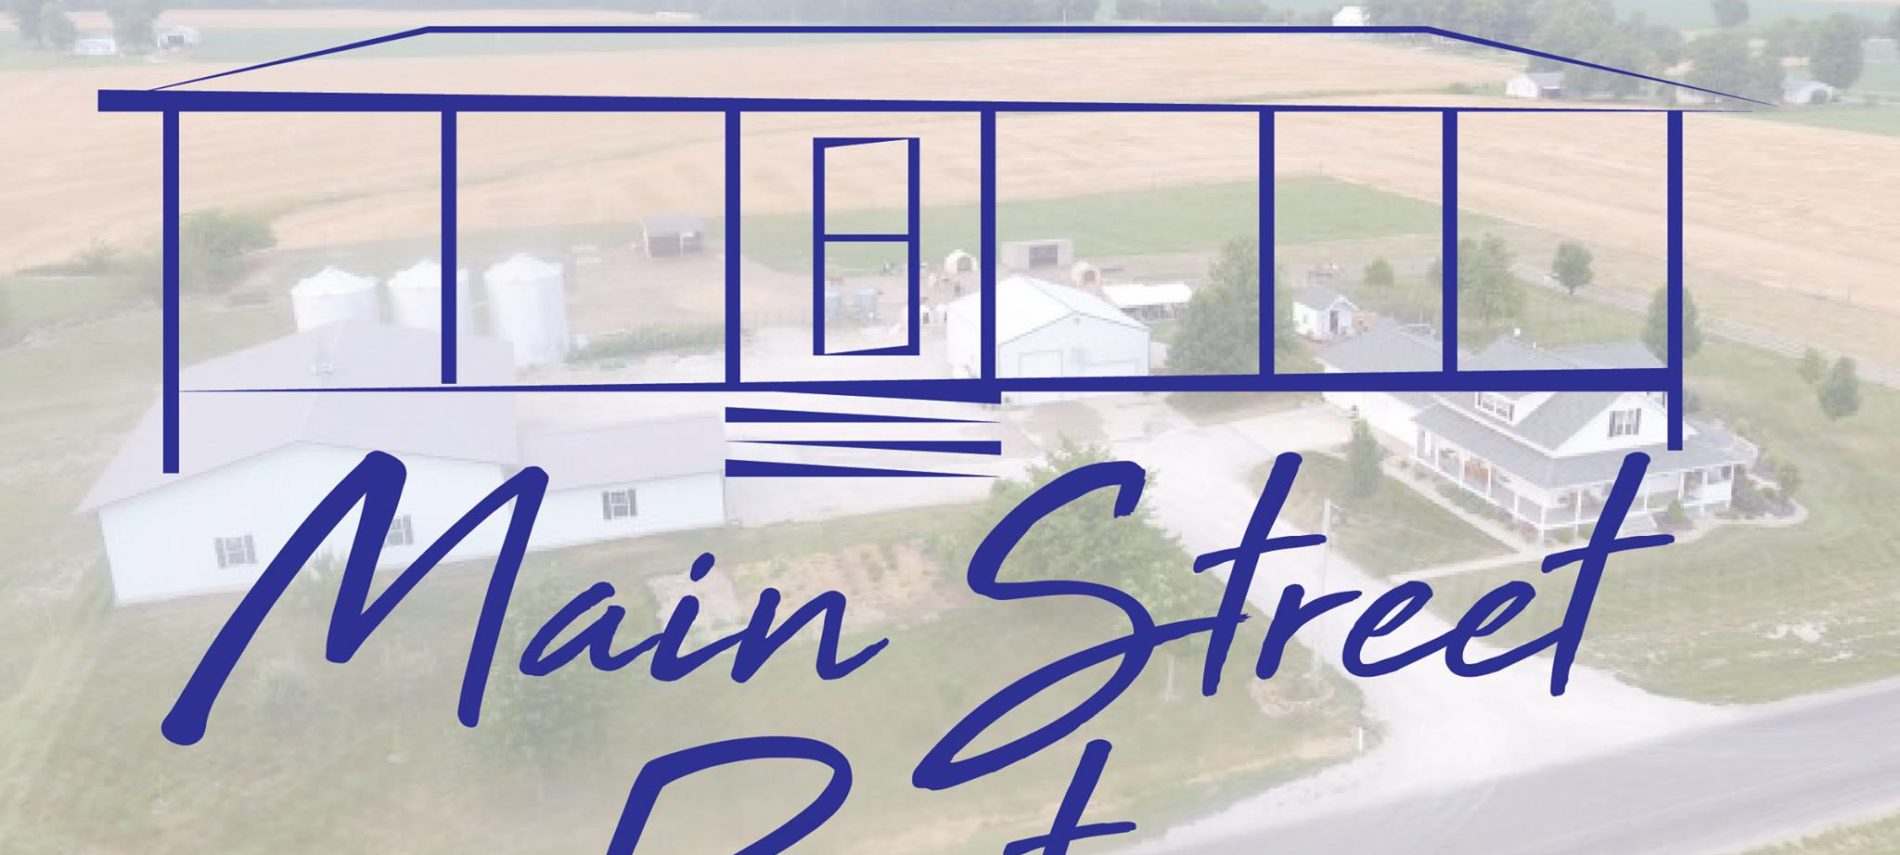 The Main Street Farms logo--a sketch of a barn superimposed over a pasture scene.